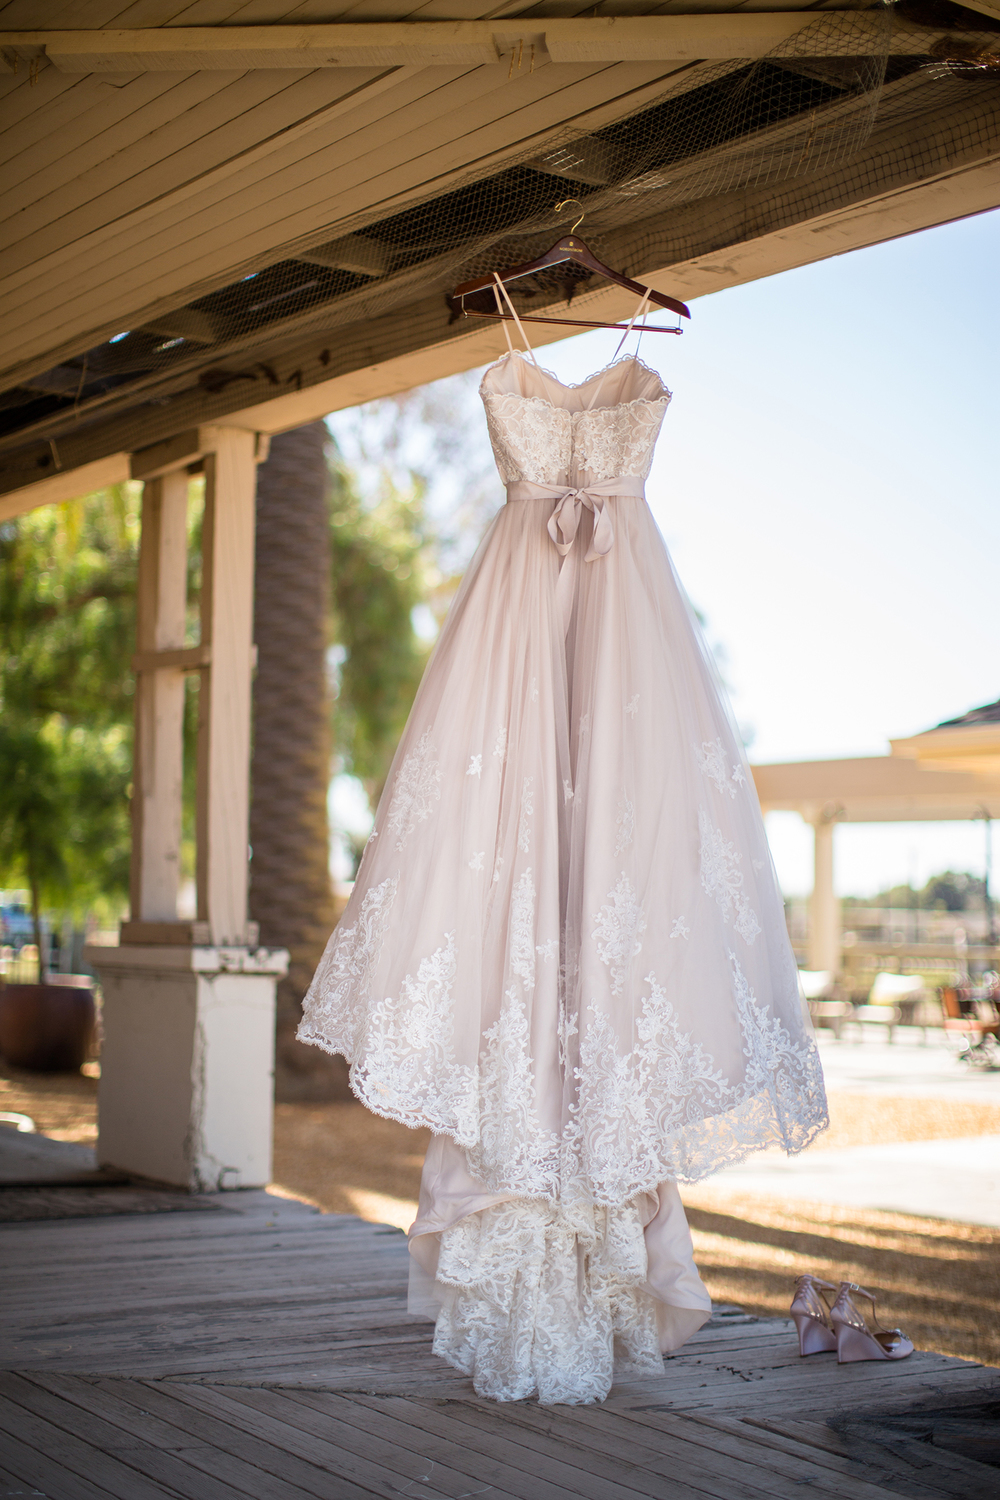 Dena_Rooney_Wedding_Photographer_Birchcreek_Ranch_Livermore_001.jpg